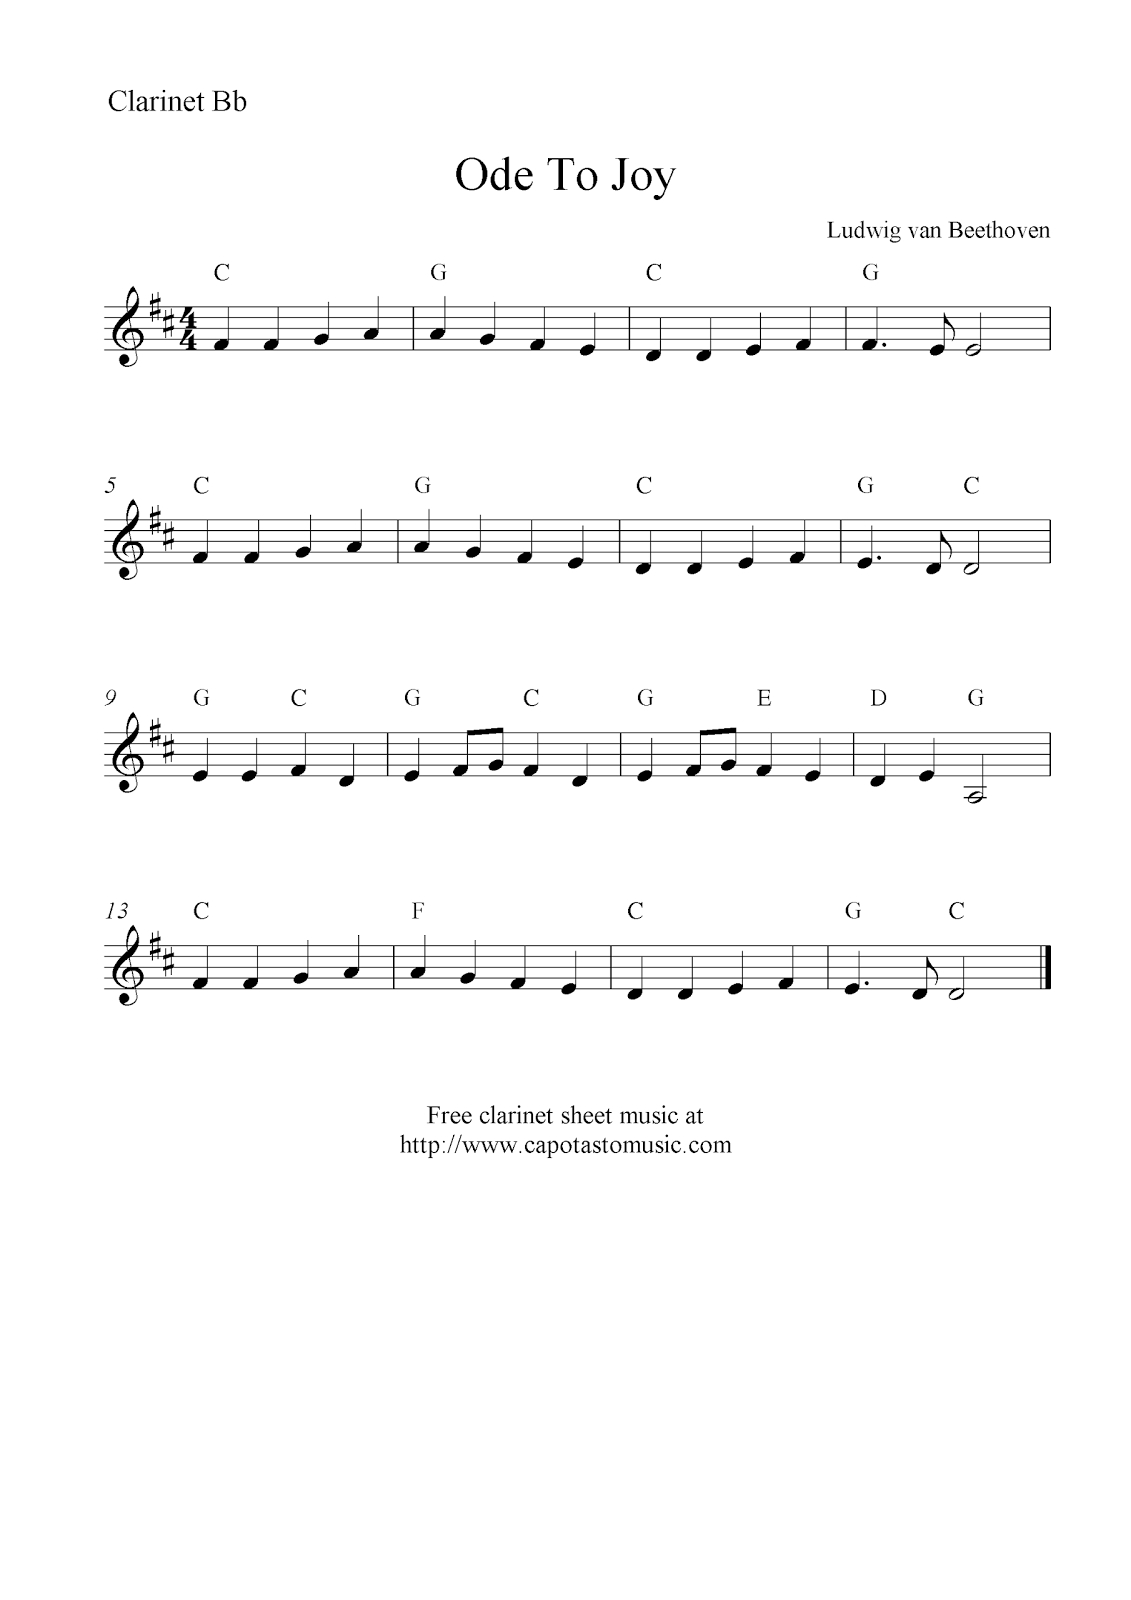 Ode To Joybeethoven, Free Clarinet Sheet Music Notes - Free Printable Christmas Sheet Music For Clarinet